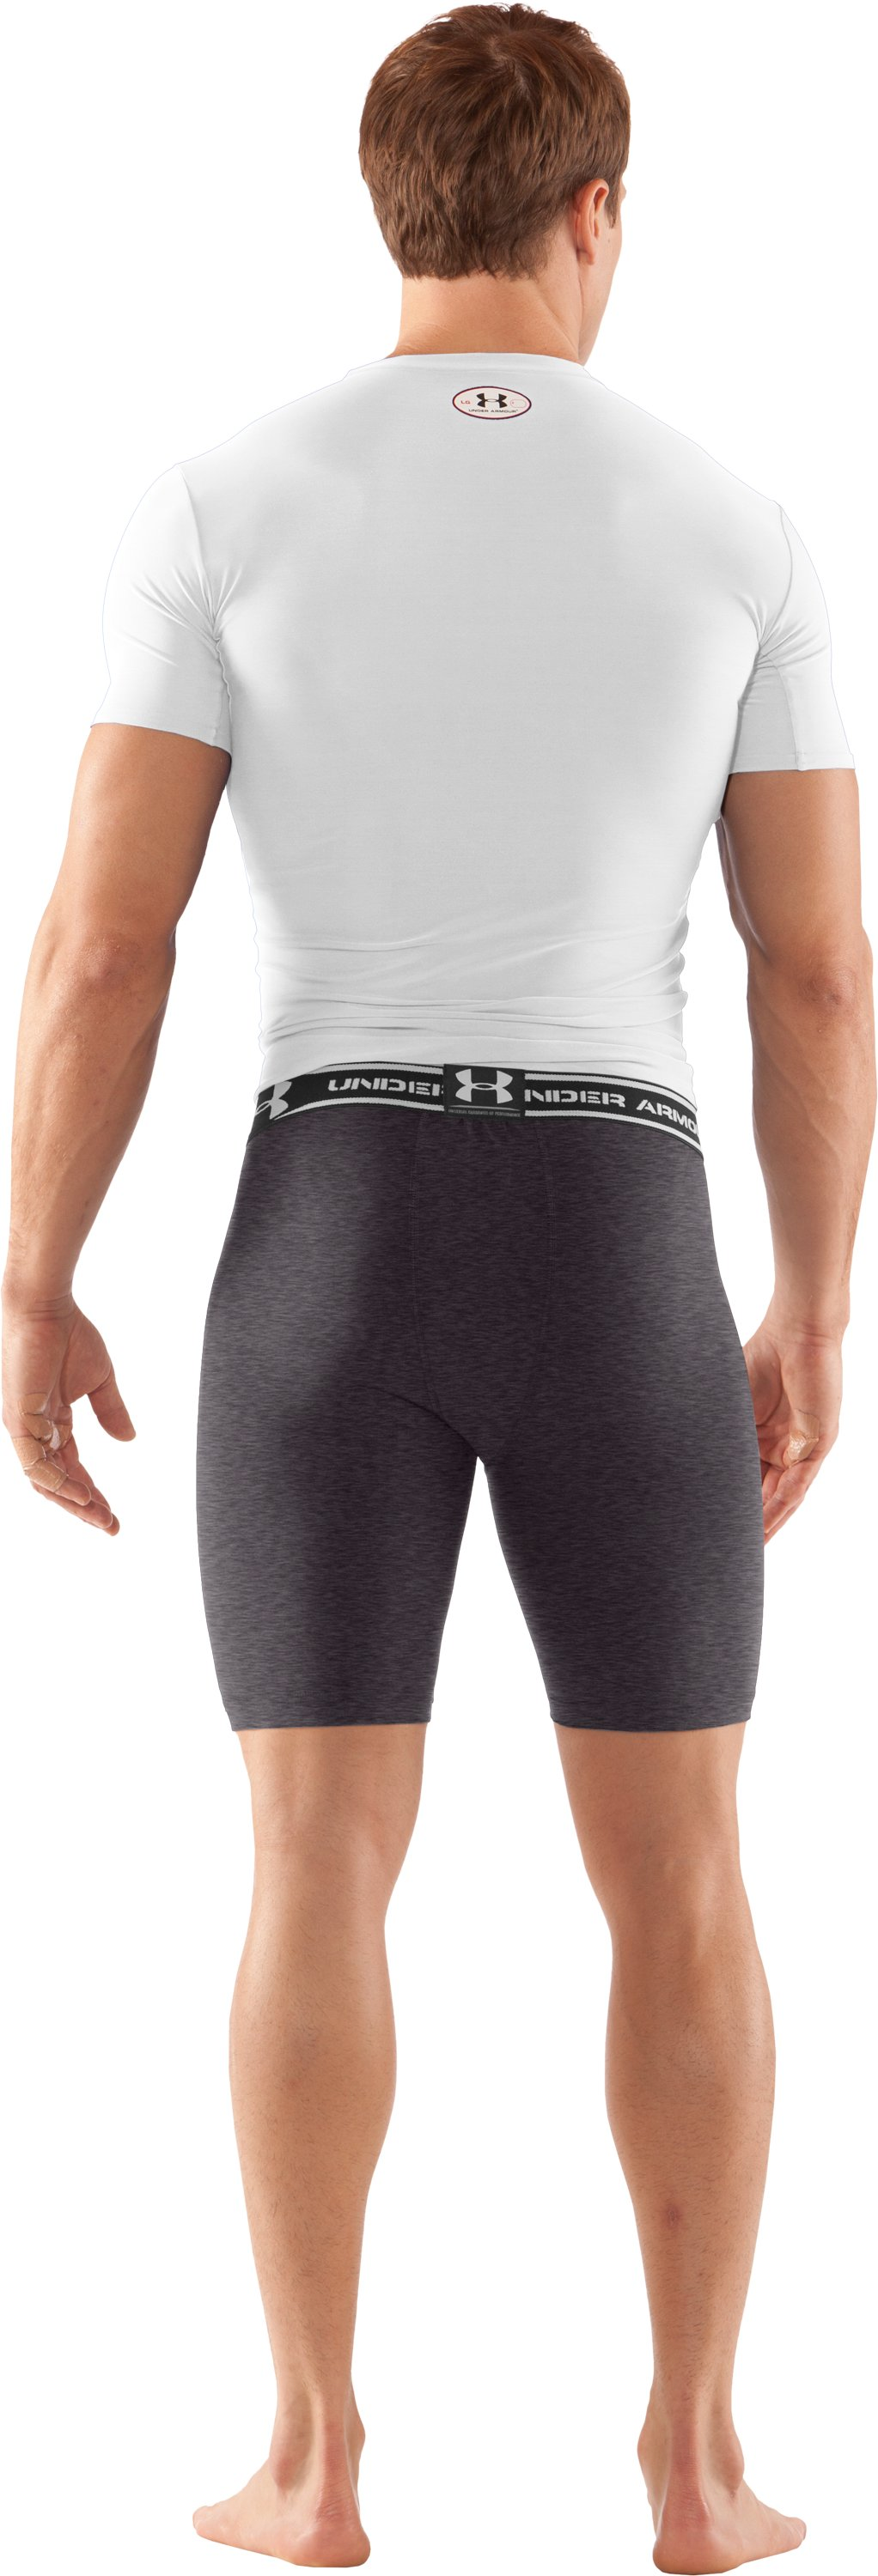 "Men's HeatGear® Compression 7"" Shorts, Carbon Heather, Back"